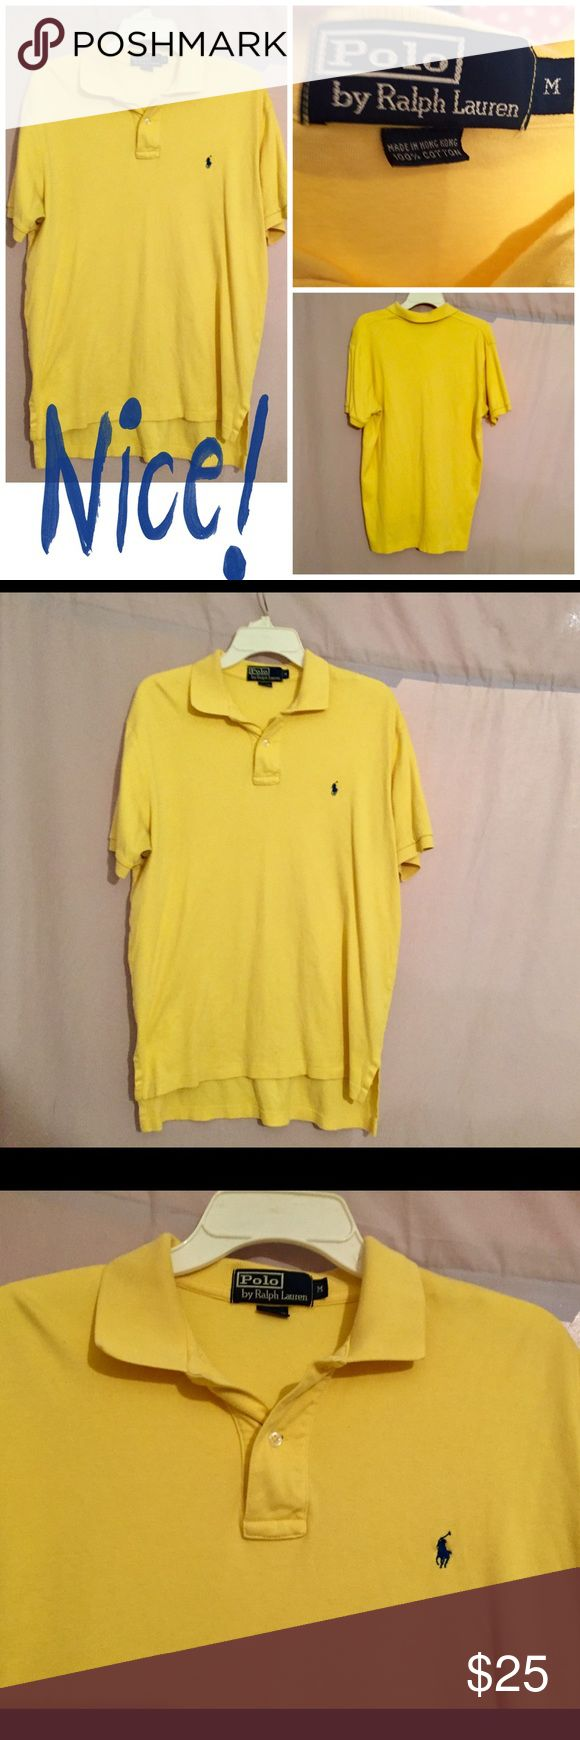 POLO RALPH LAUREN YELLOW POLO SHIRT Men's size M-but runs big, Polo by Ralph Lauren 100% cotton Polo shirt. Bright yellow w/a navy blue Polo pony on the chest. Bought this top for my cousin @ the Nordstrom's half yearly sale & he told me he won't wear yellow. In perfect condition & only worn once by me w/a pair of leggings. Washed but hung dry. Polo by Ralph Lauren Shirts Polos